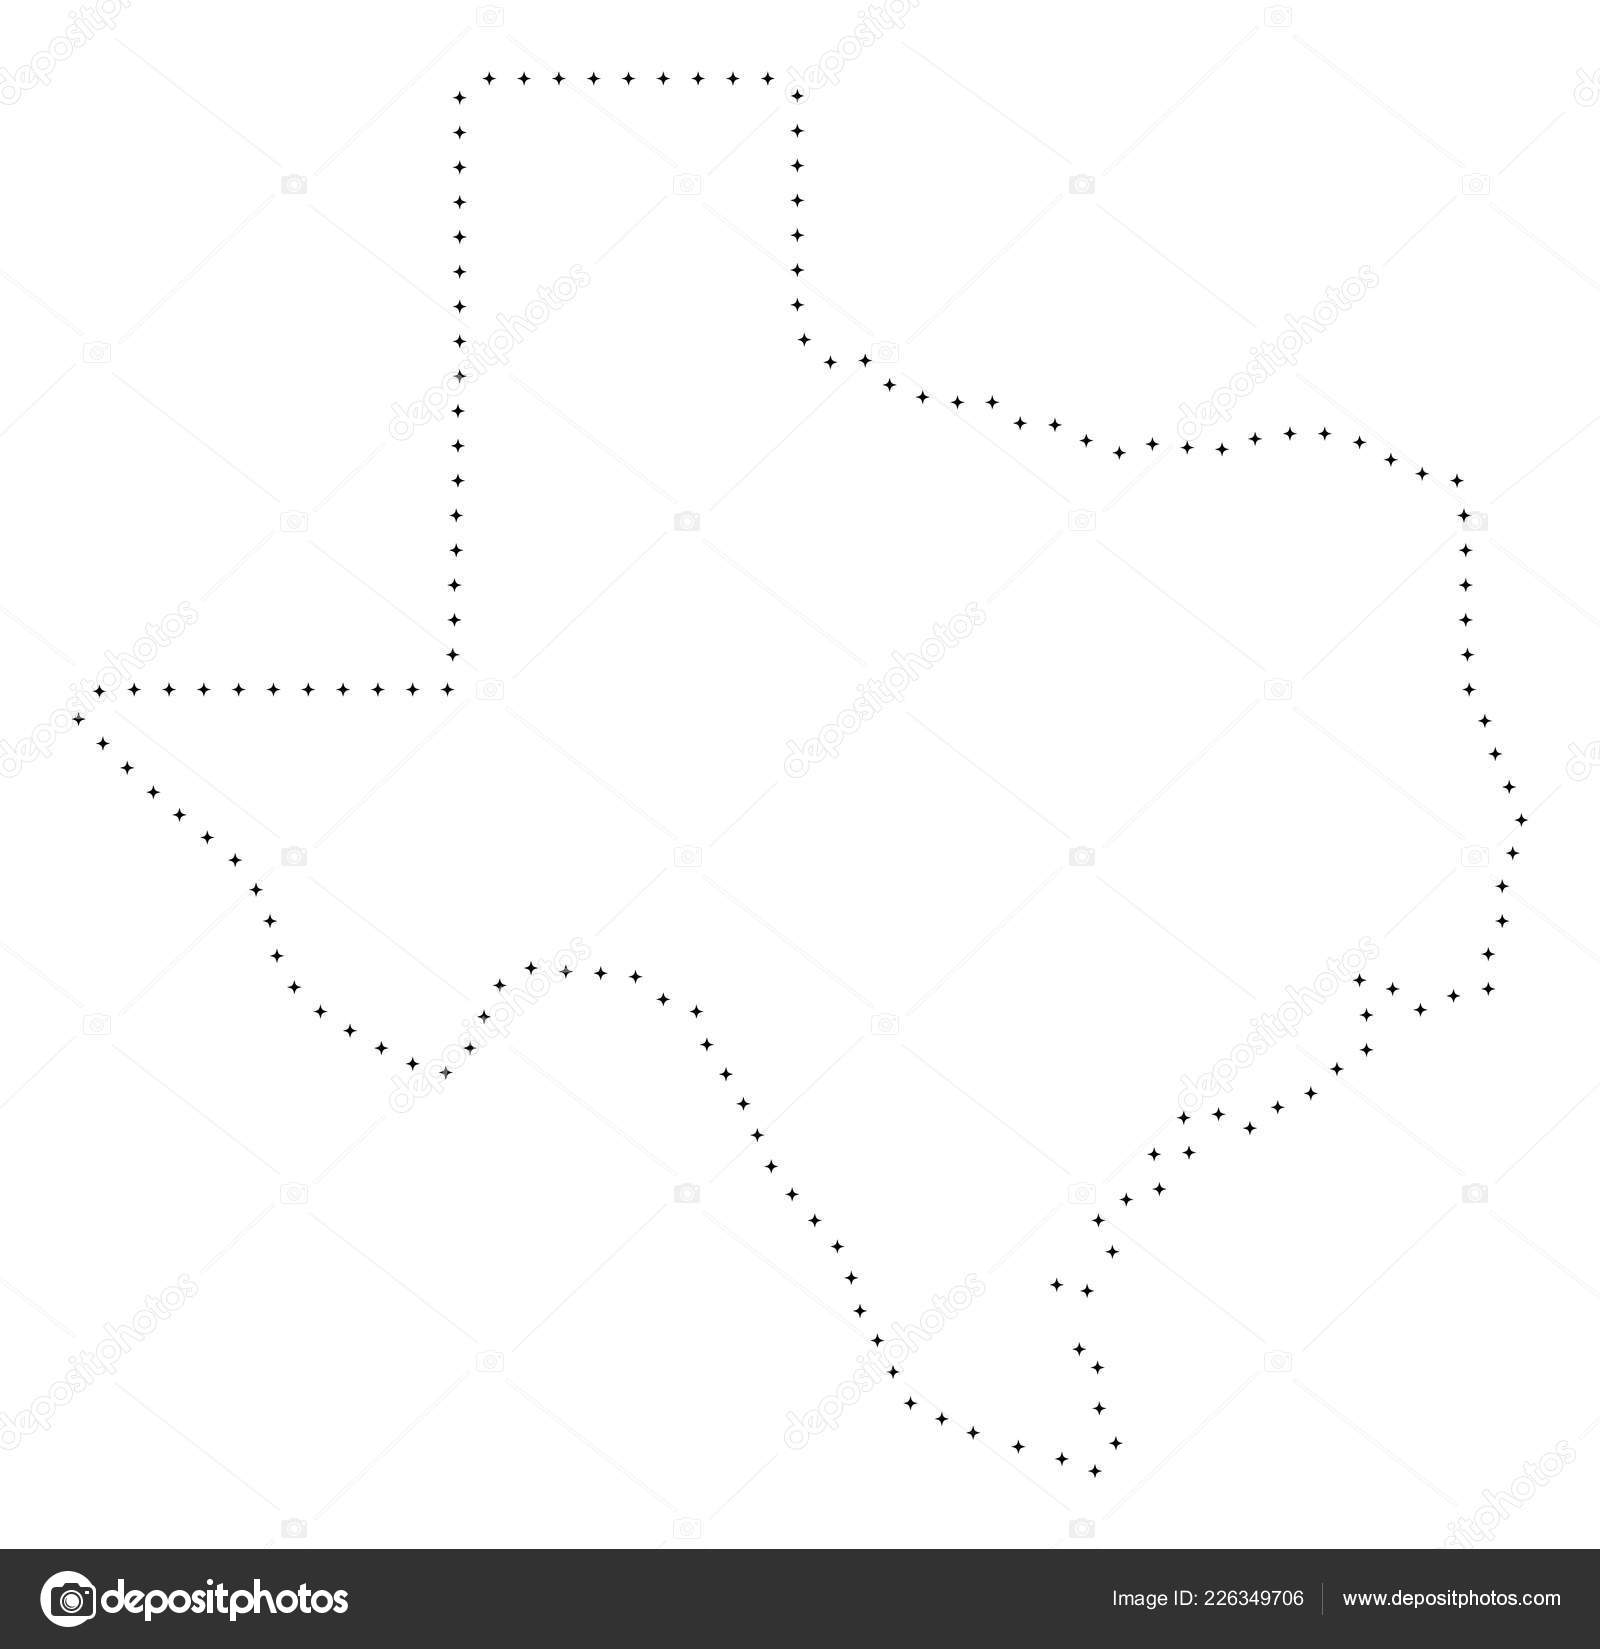 Map Of Texas Quiz.Dotted Stroke Texas State Map Stock Vector